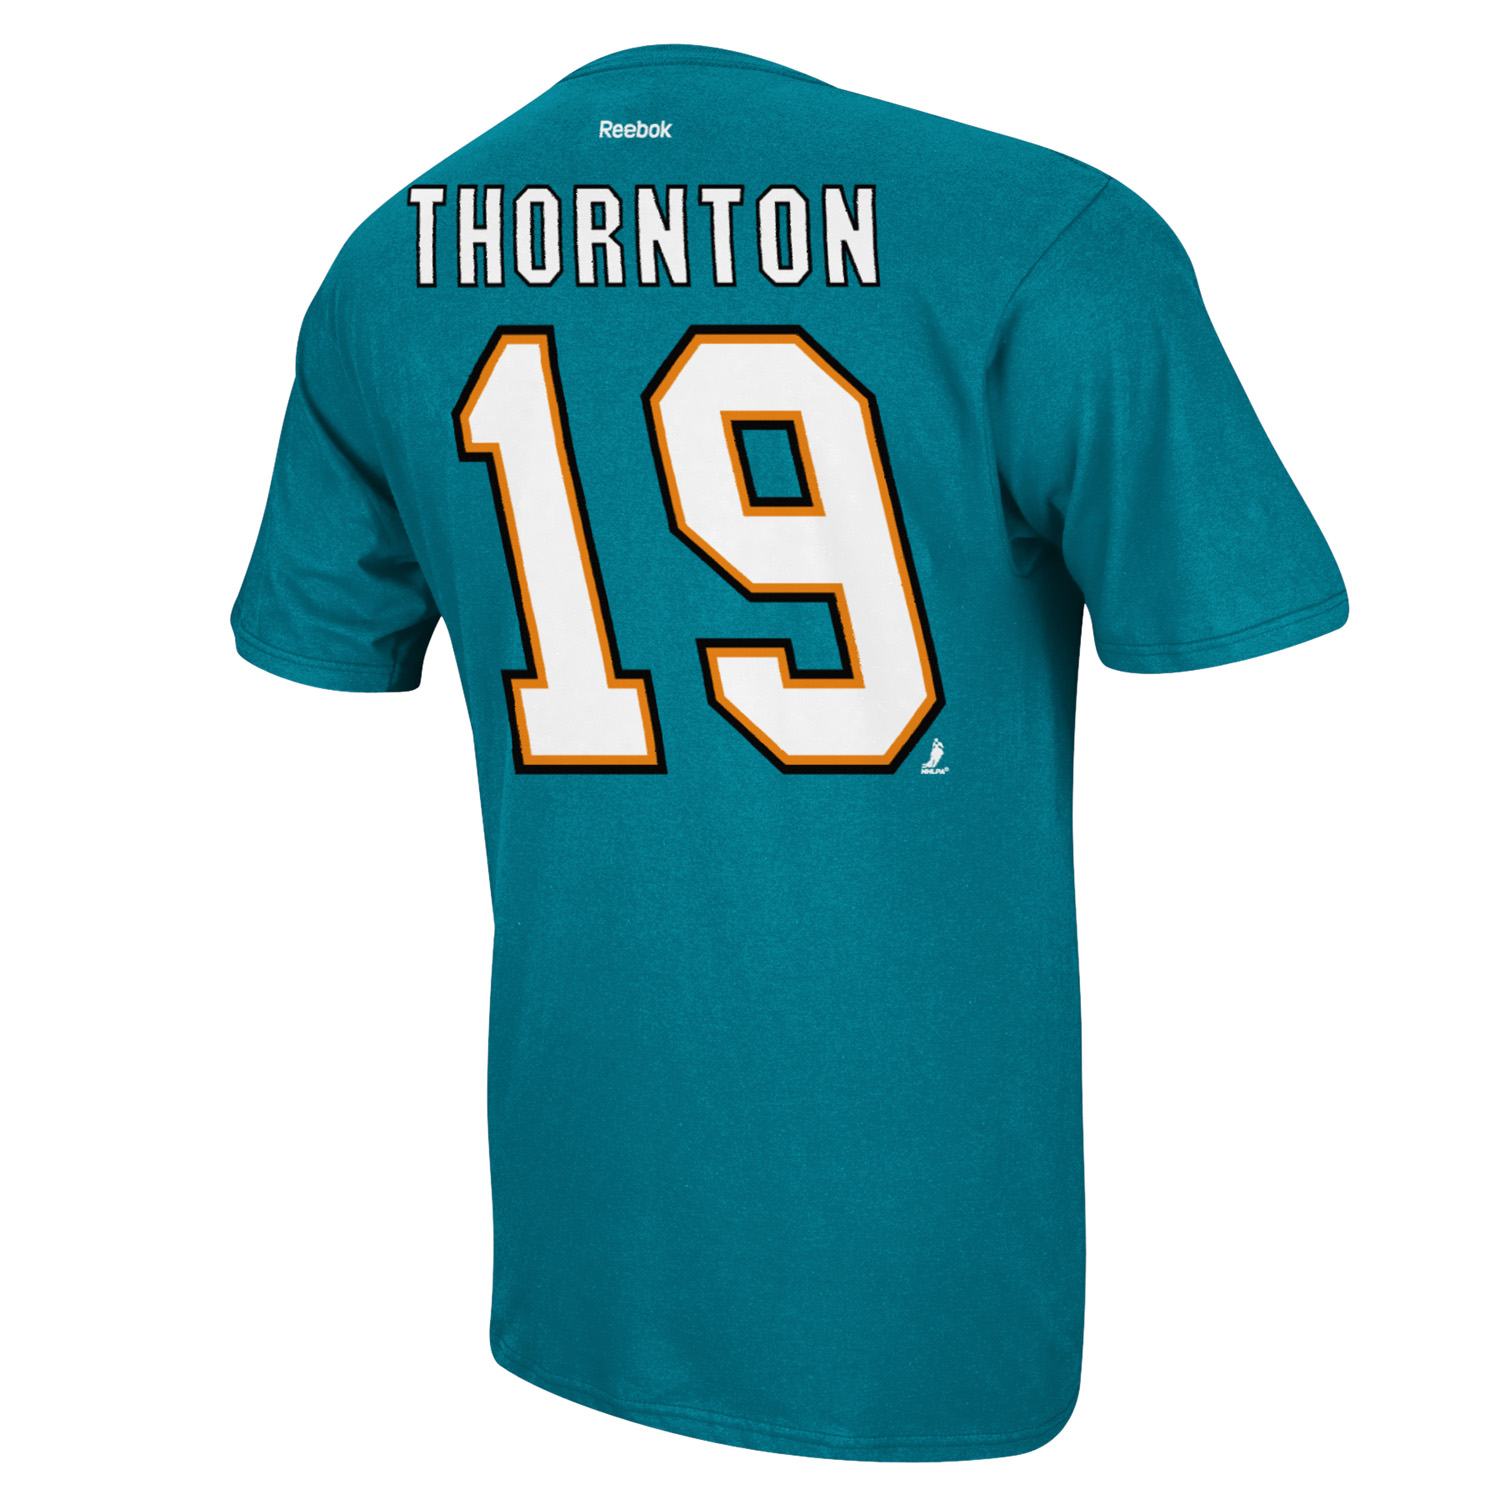 San Jose Sharks Joe Thornton Reebok NHL Player T Shirt Men Teal